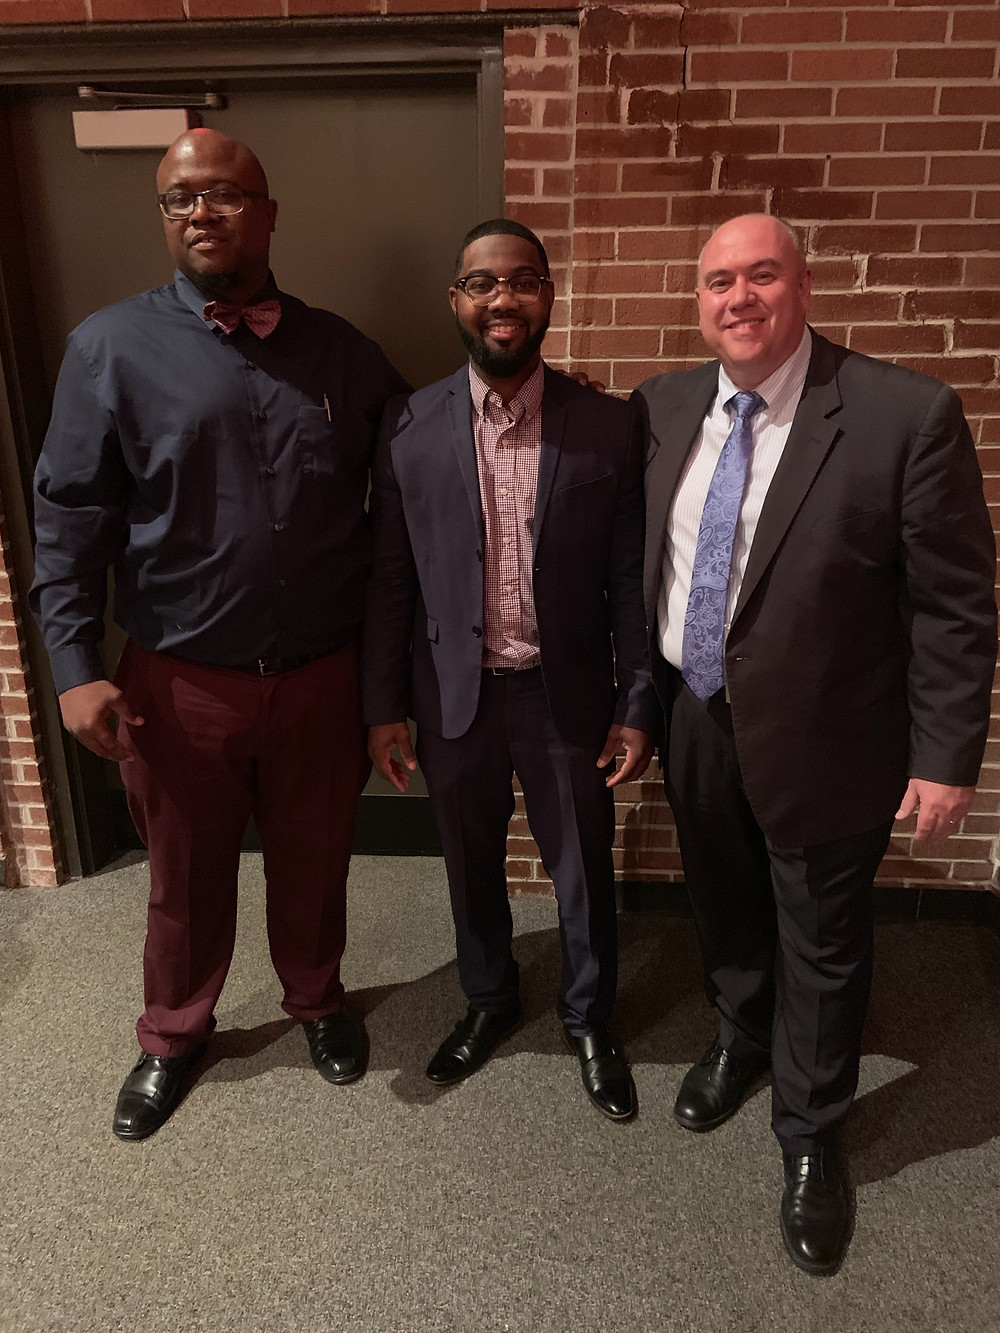 ((L-R) CHS science teacher and S.A.G.E. sponsor, Harold Edwards; Cairo Mayor Booker Gainor; and CHS Principal Chris Lokey